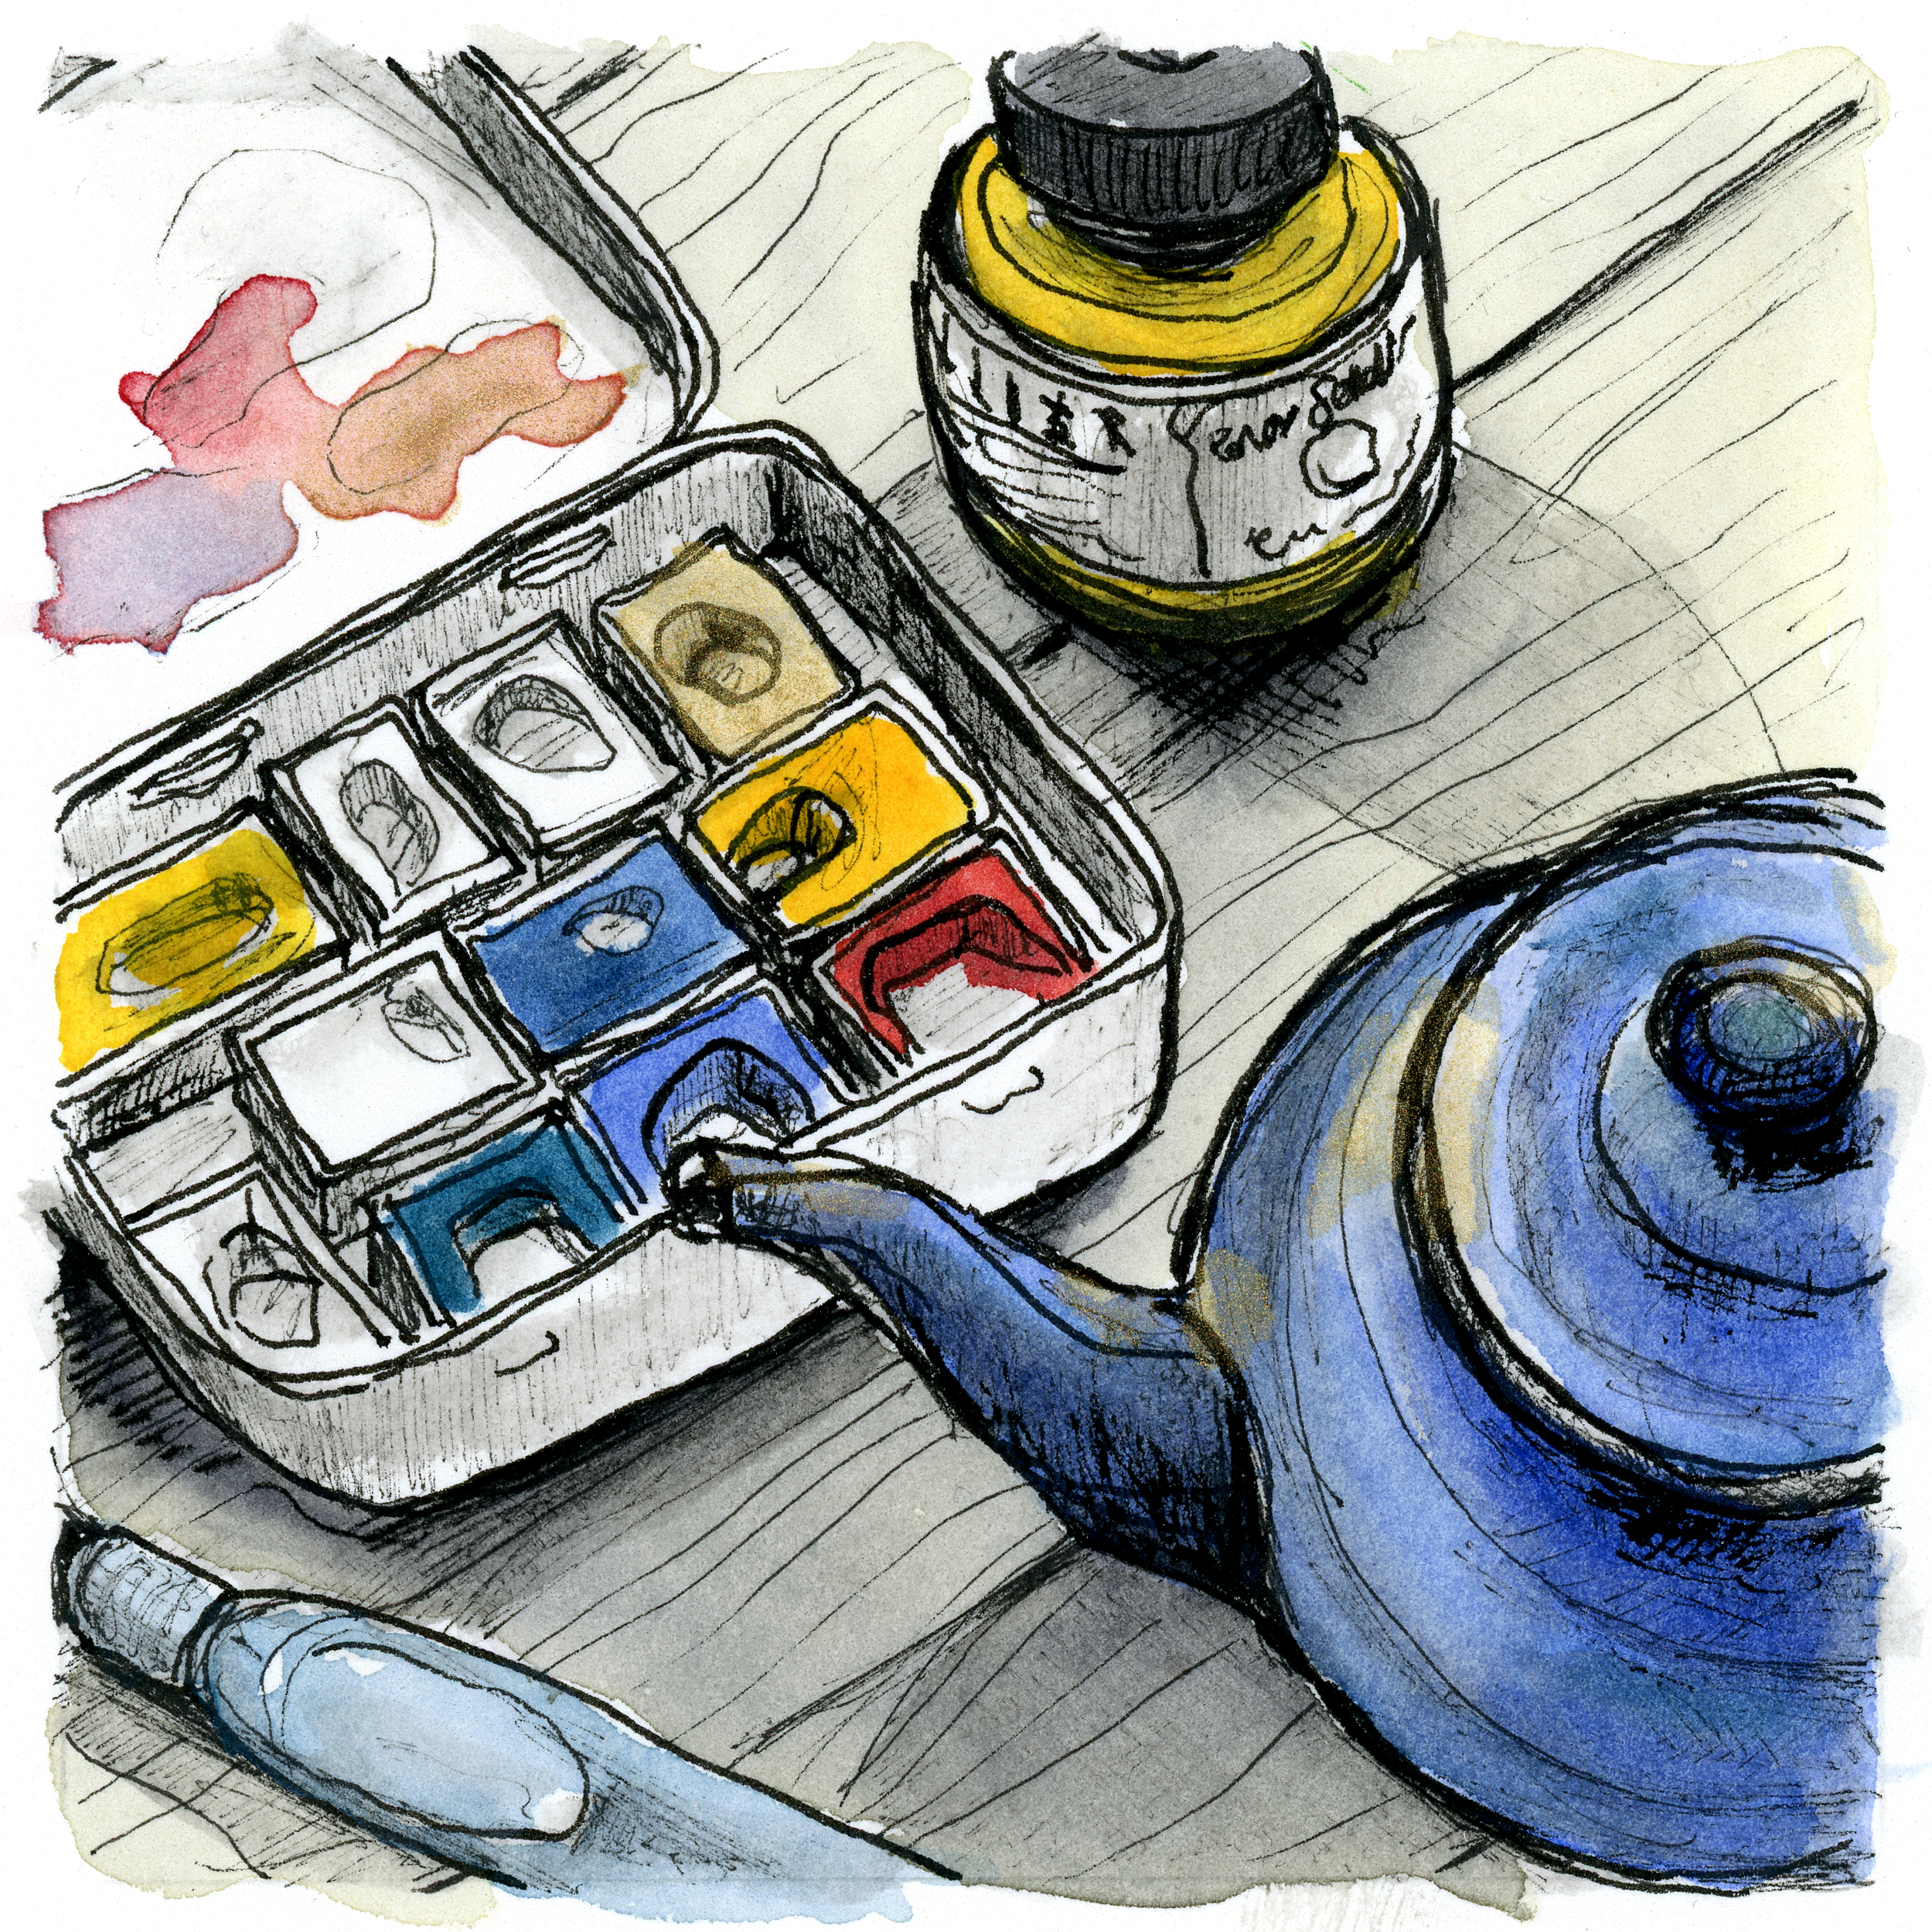 My favourite illustration tools - my waterbrush, a bottle of ink, my little old mint tin filled with watercolours, and of course some tea to keep me hydrated